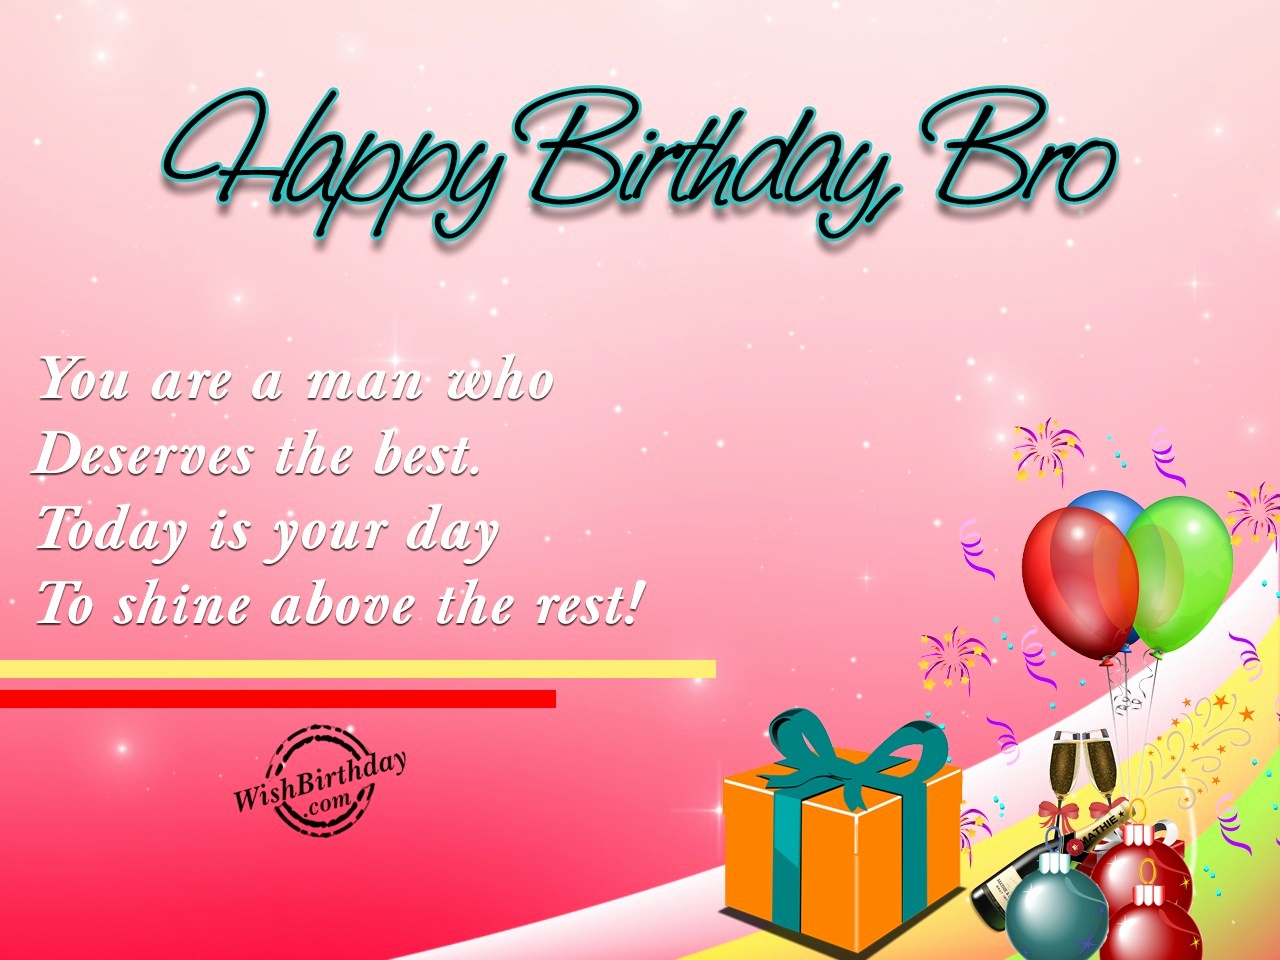 birthday greeting cards images for brother ; birthday-wishes-for-brother-greeting-cards-lovely-happy-birthday-greetings-of-birthday-wishes-for-brother-greeting-cards